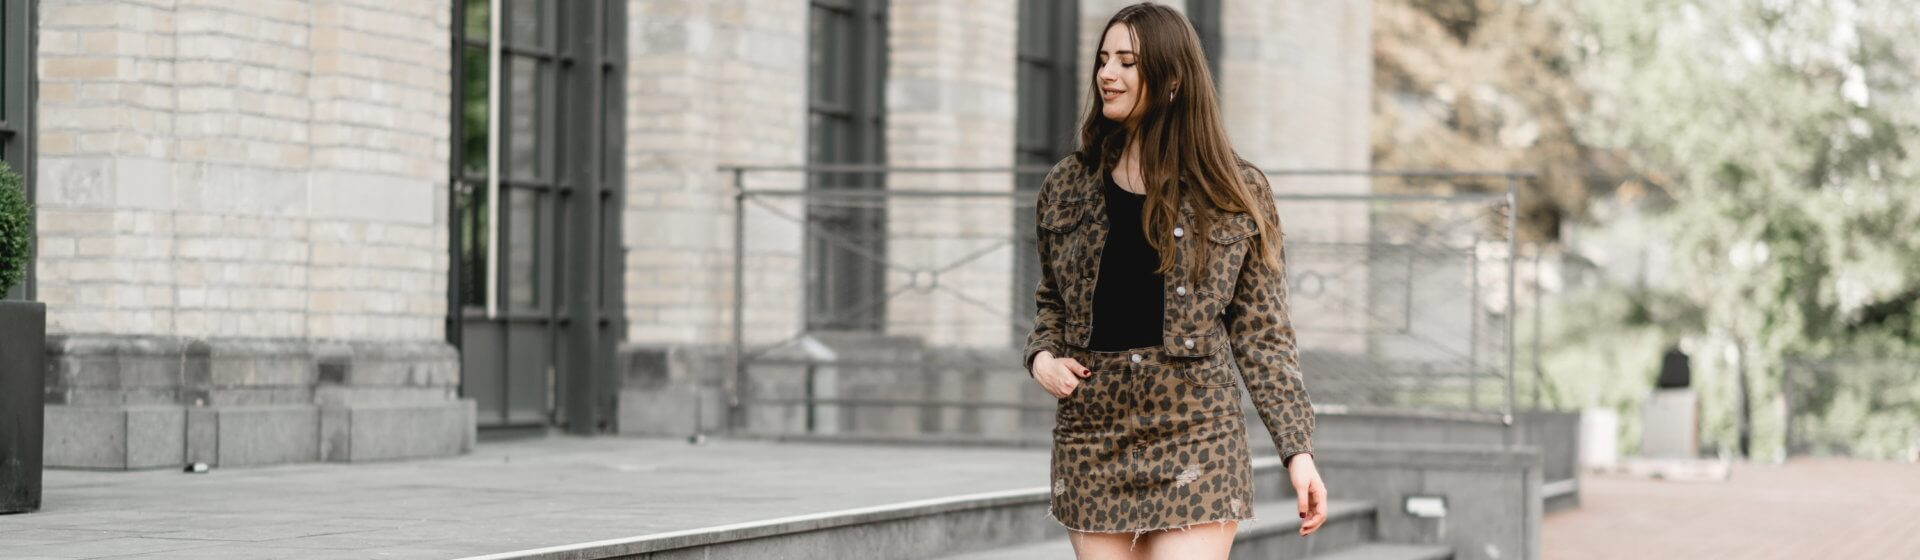 Leo-Print-Leo kombinieren 2018-Leomuster Outfit-Shoelove by Deichmann-Modeblog-andysparkles